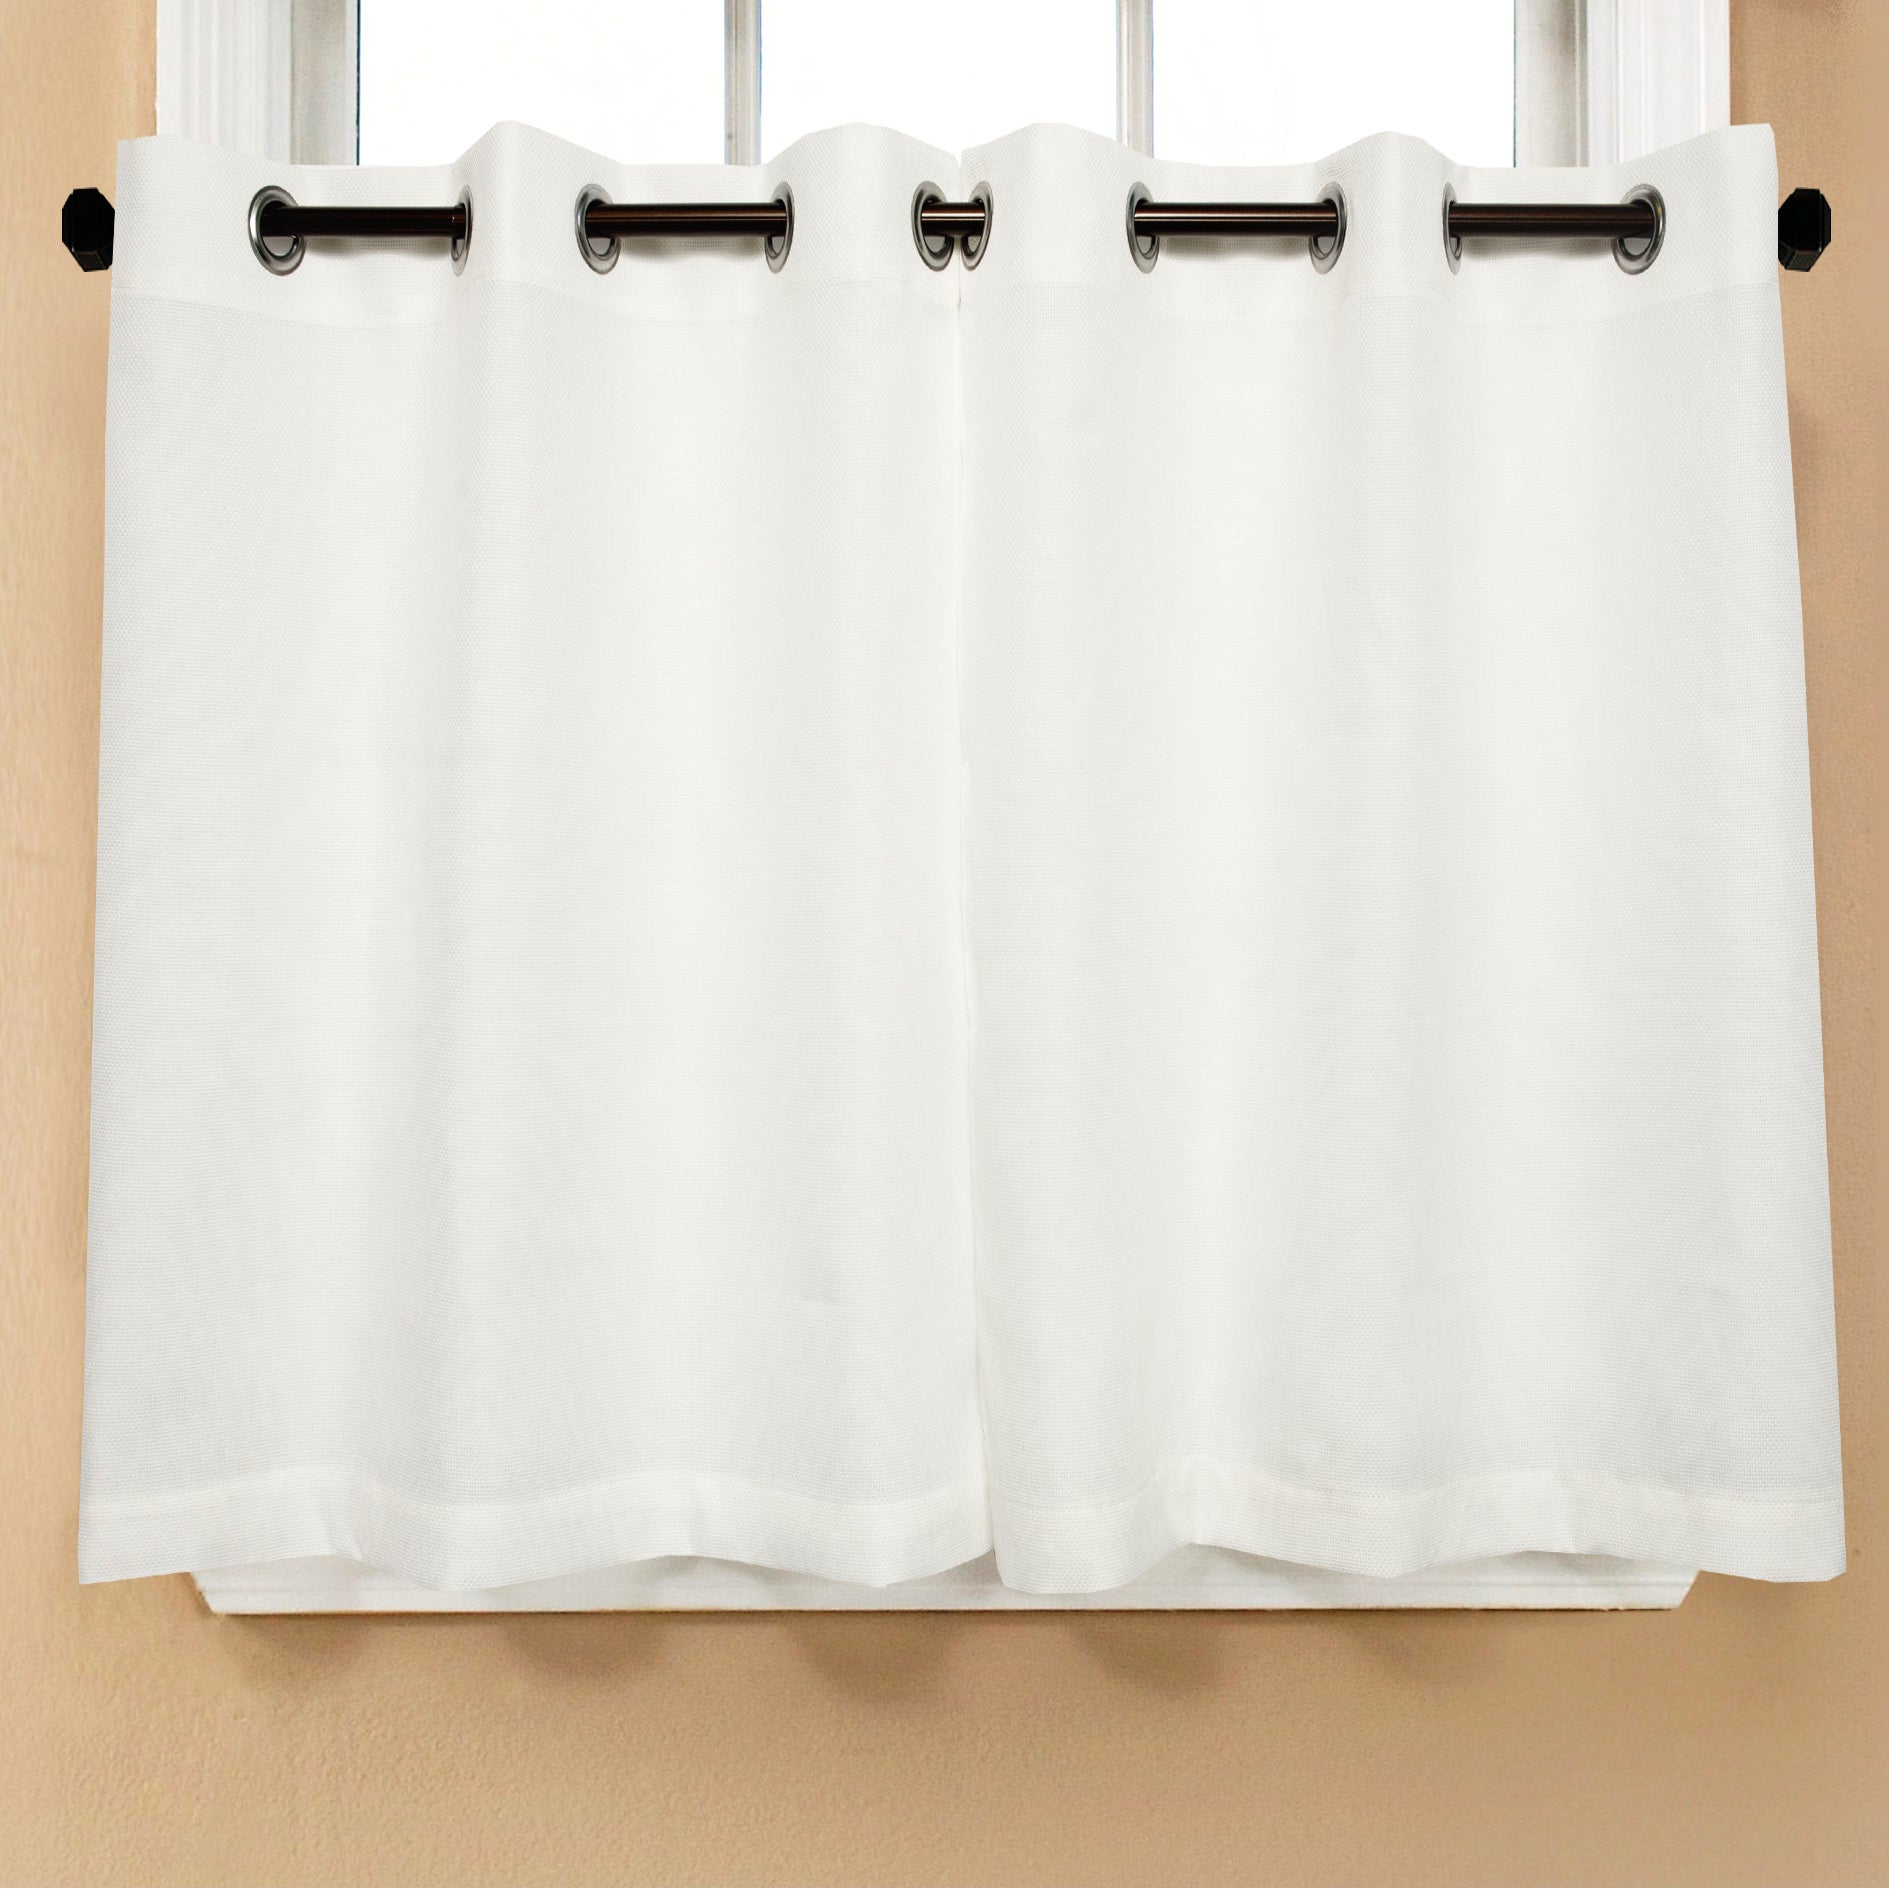 Shop Modern Subtle Texture Solid White Kitchen Curtain Parts With Grommets Tier And Valance Options